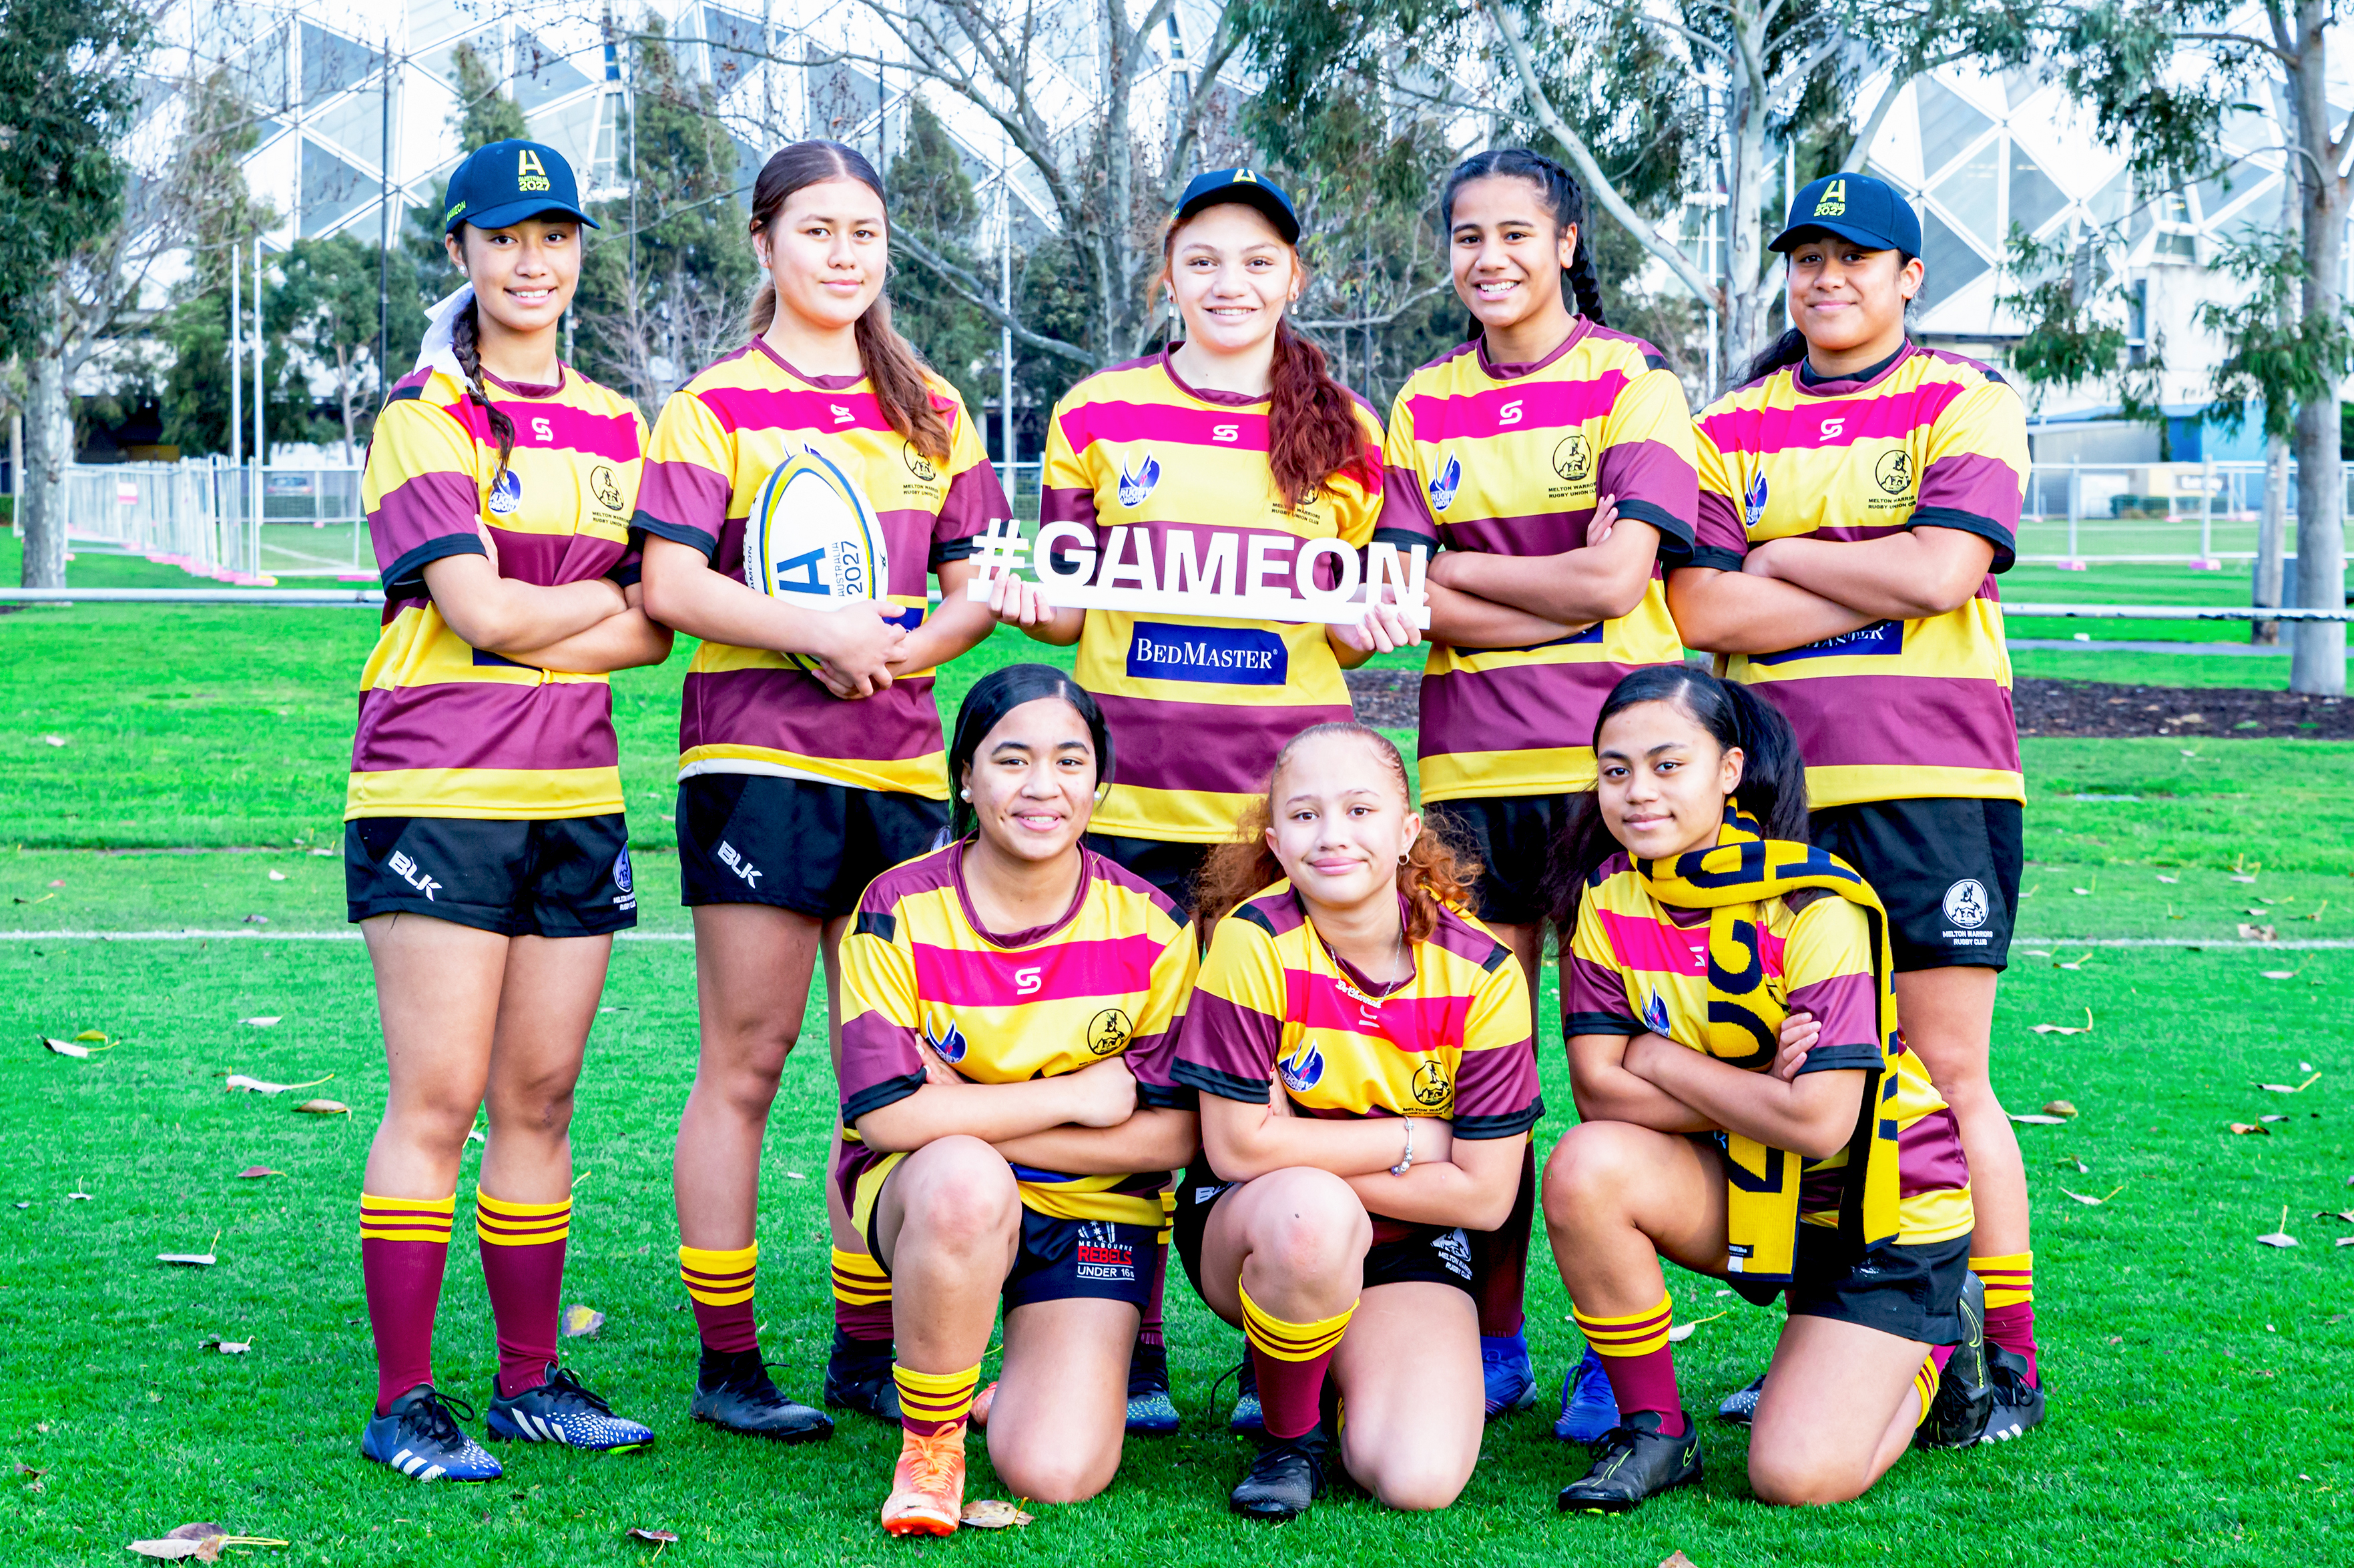 Melton Rugby Club's Youth Girls